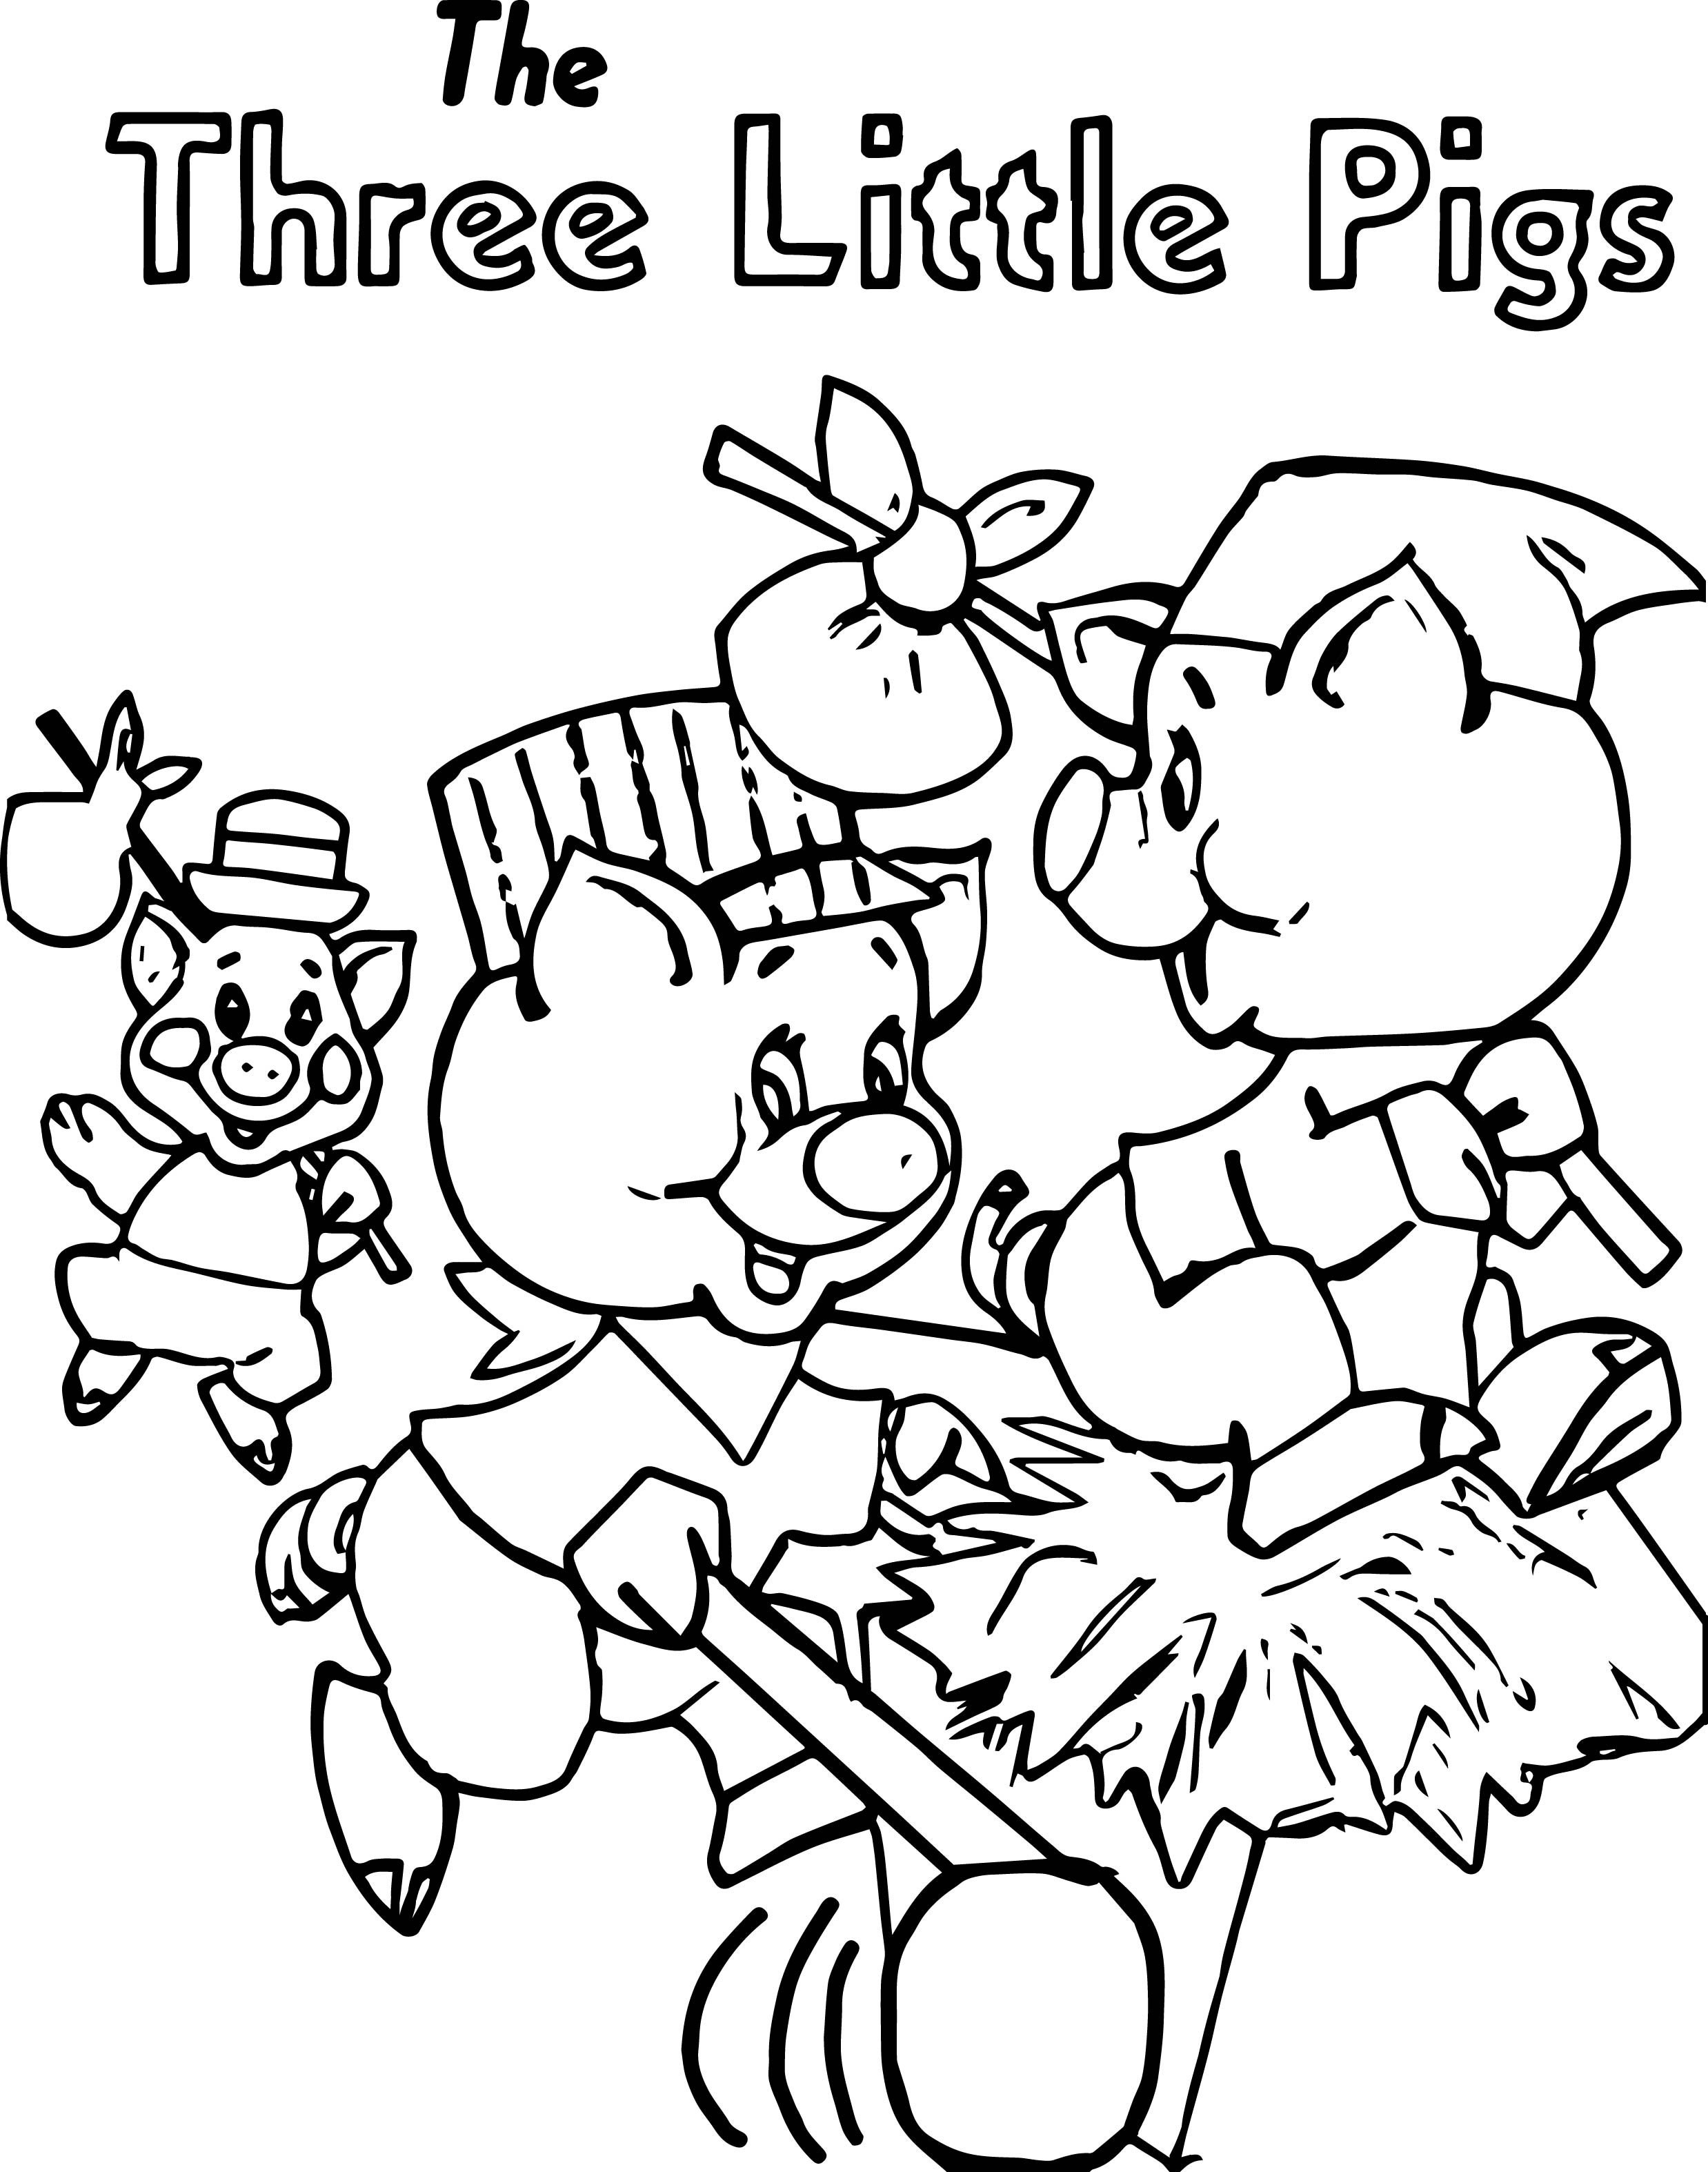 Running The Three Little Pigs Coloring